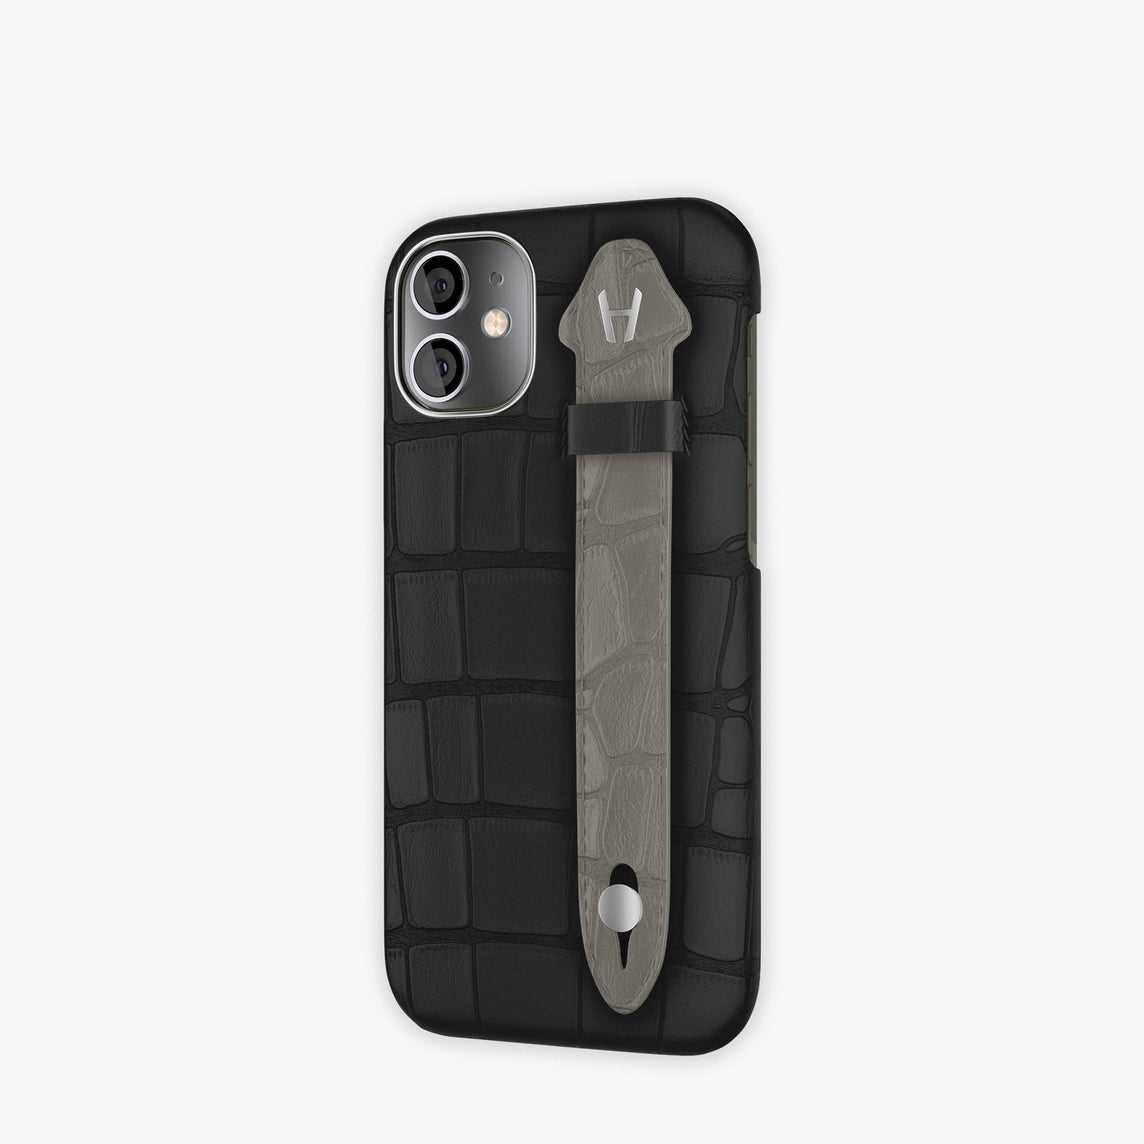 Alligator Side Finger Case iPhone 12 Mini | Black/Grey Pearl  -Stainless Steel